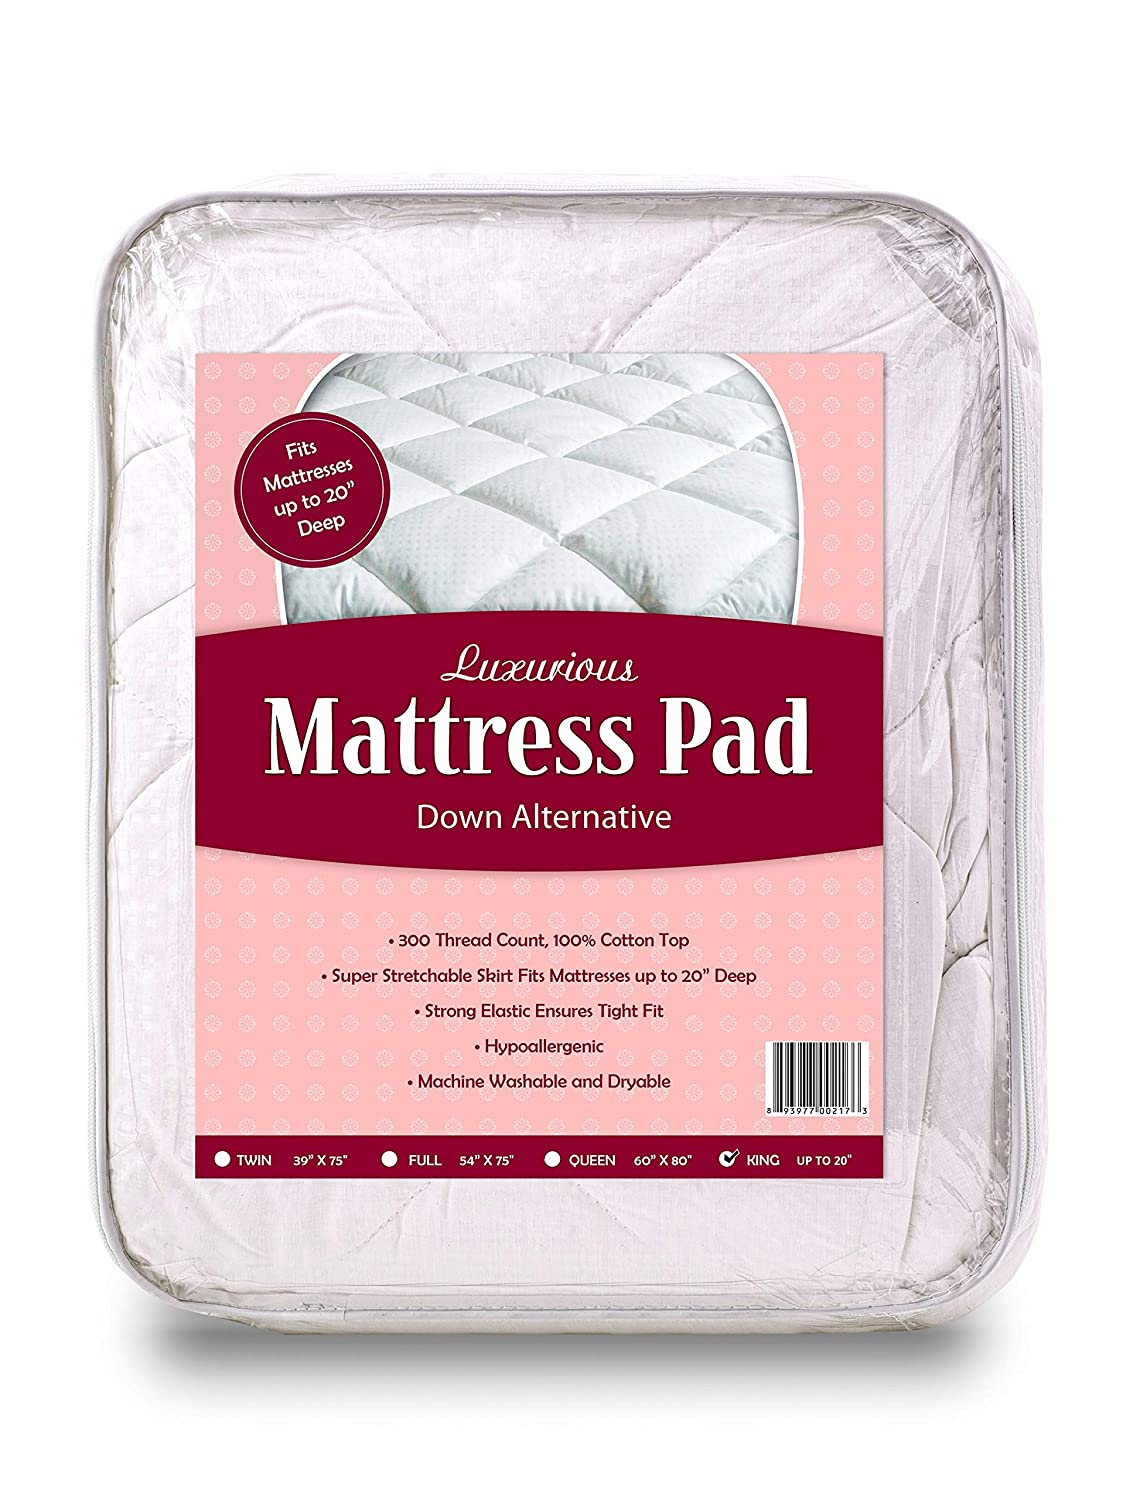 100/% Cotton Top Mastertex Twin Mattress Pad Topper Fitted 39x75 300 TC Quilted stretchable up to 14 Full Coverage Bed Mattress Pad Twin Highly Breathable Down Alternative Mattress Cover